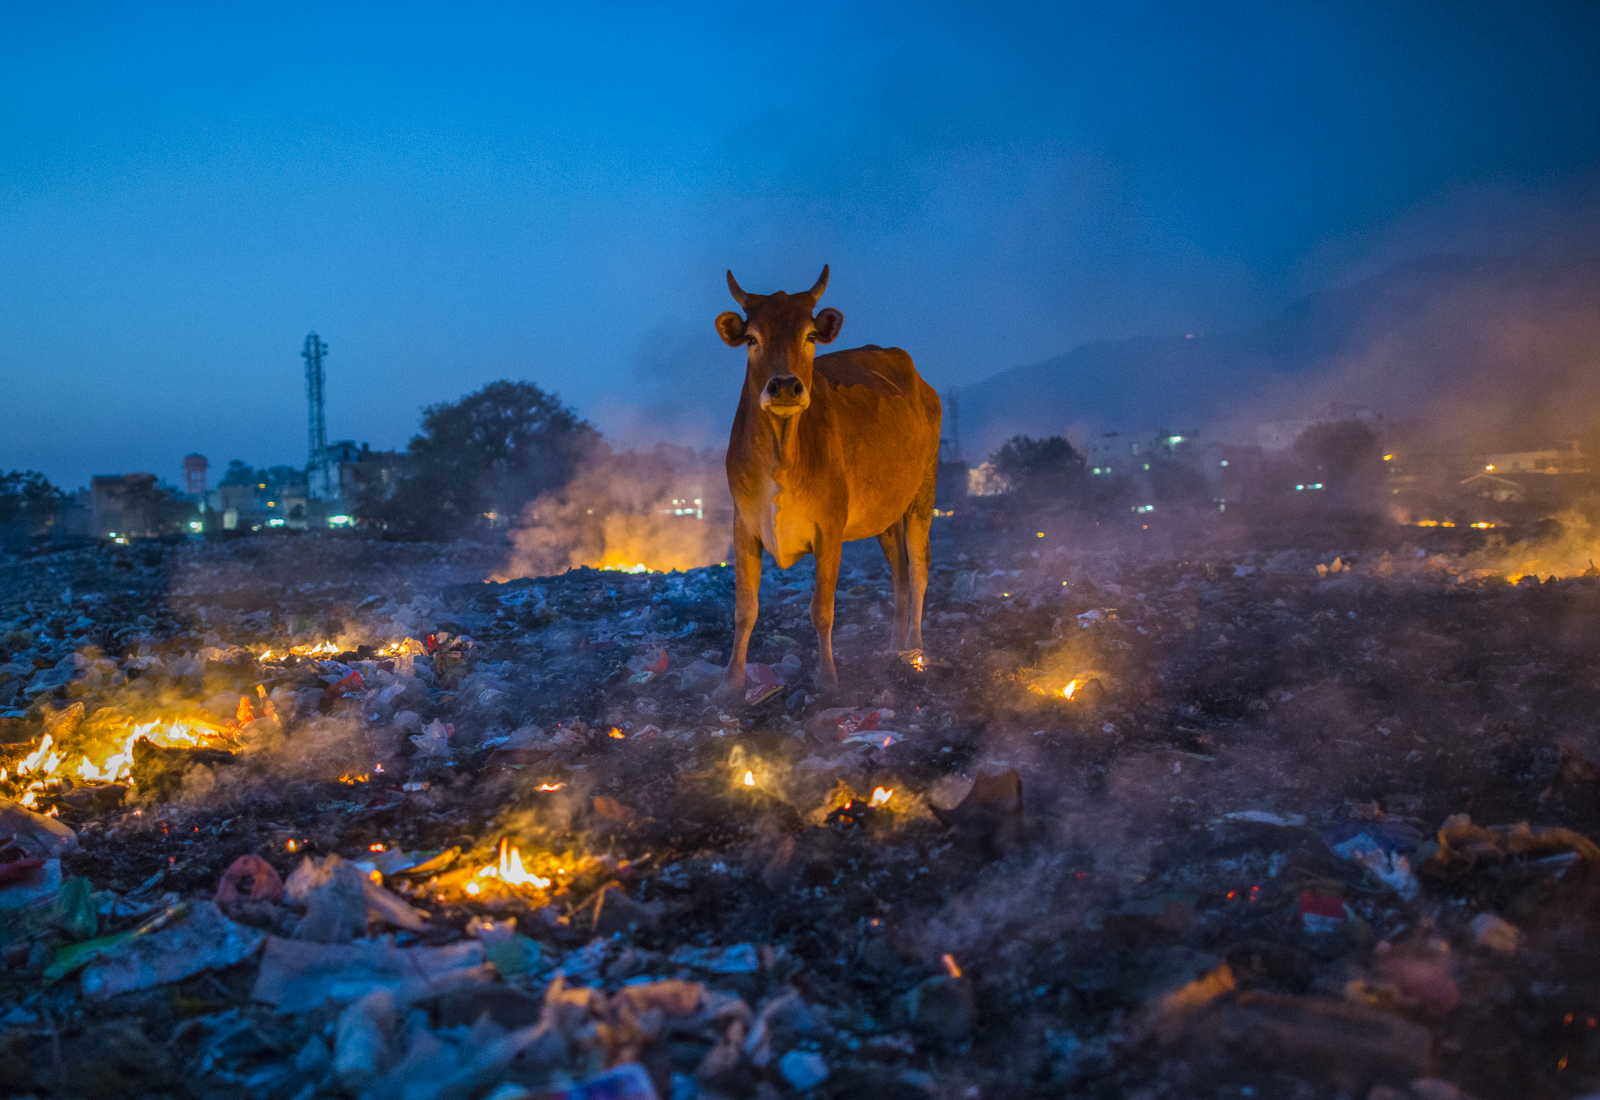 The ubiquitous and sacred cow standing in a pile of burning trash at the Rishikesh dump along the banks of the Ganges. Photo © Pete McBride.